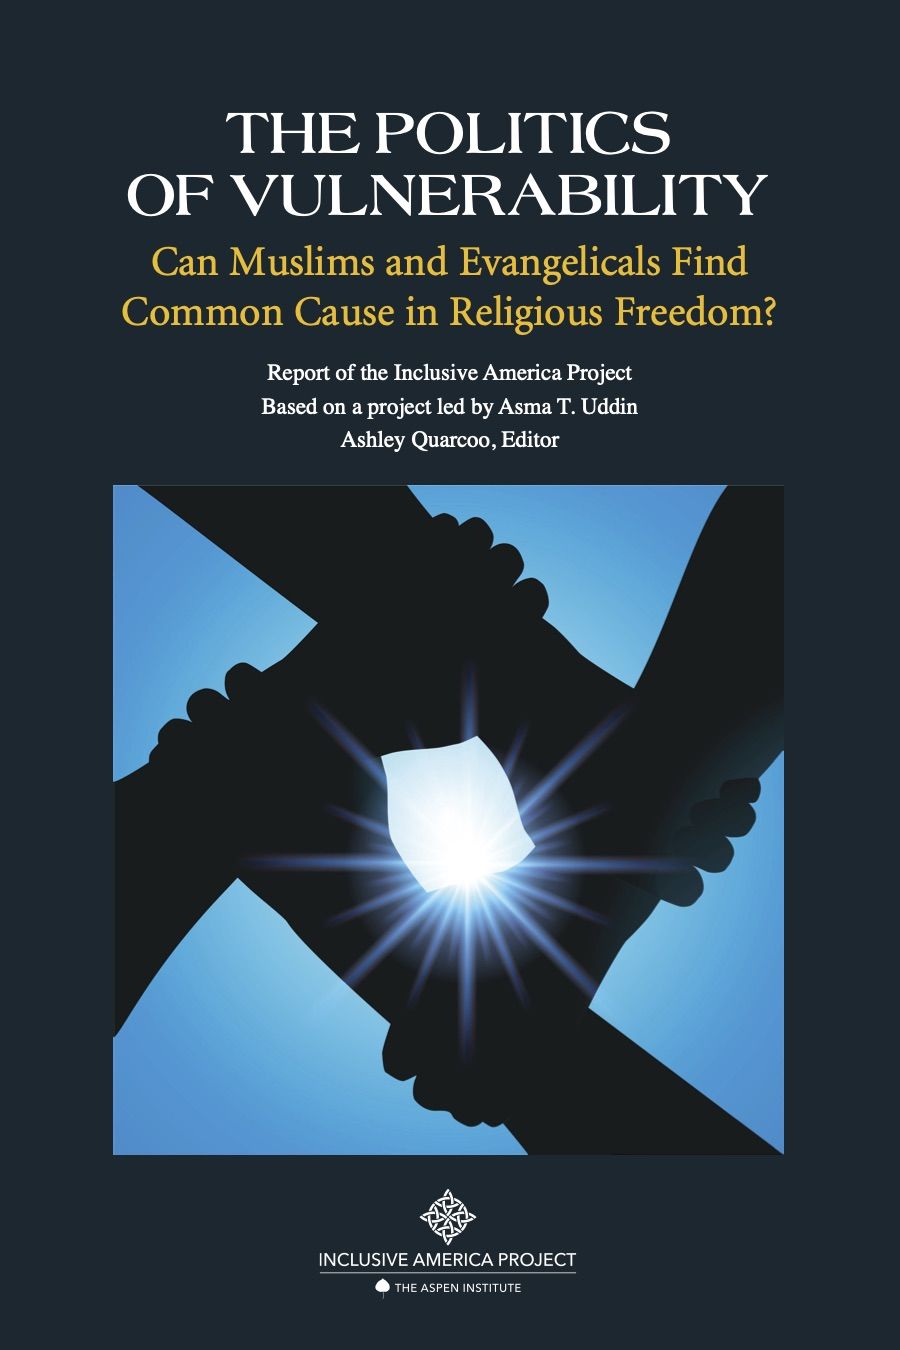 The Politics of Vulnerability: Can Muslims and Evangelicals Find Common Cause in Religious Freedom?